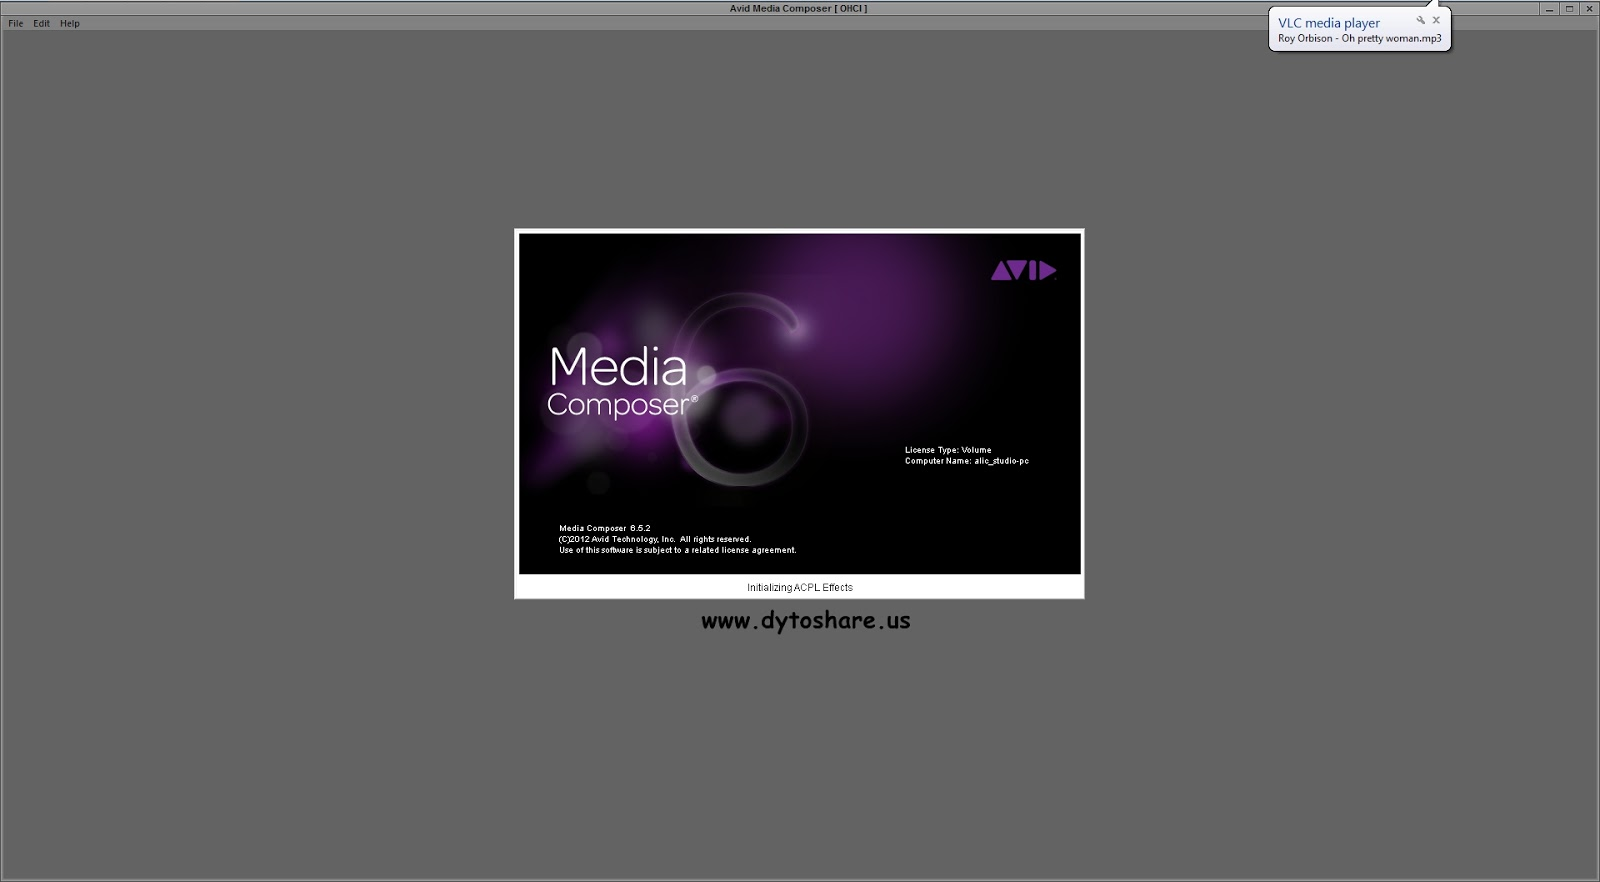 Dytobagas Software Crack Avid Media Composer 6 5 2 Activation Pack